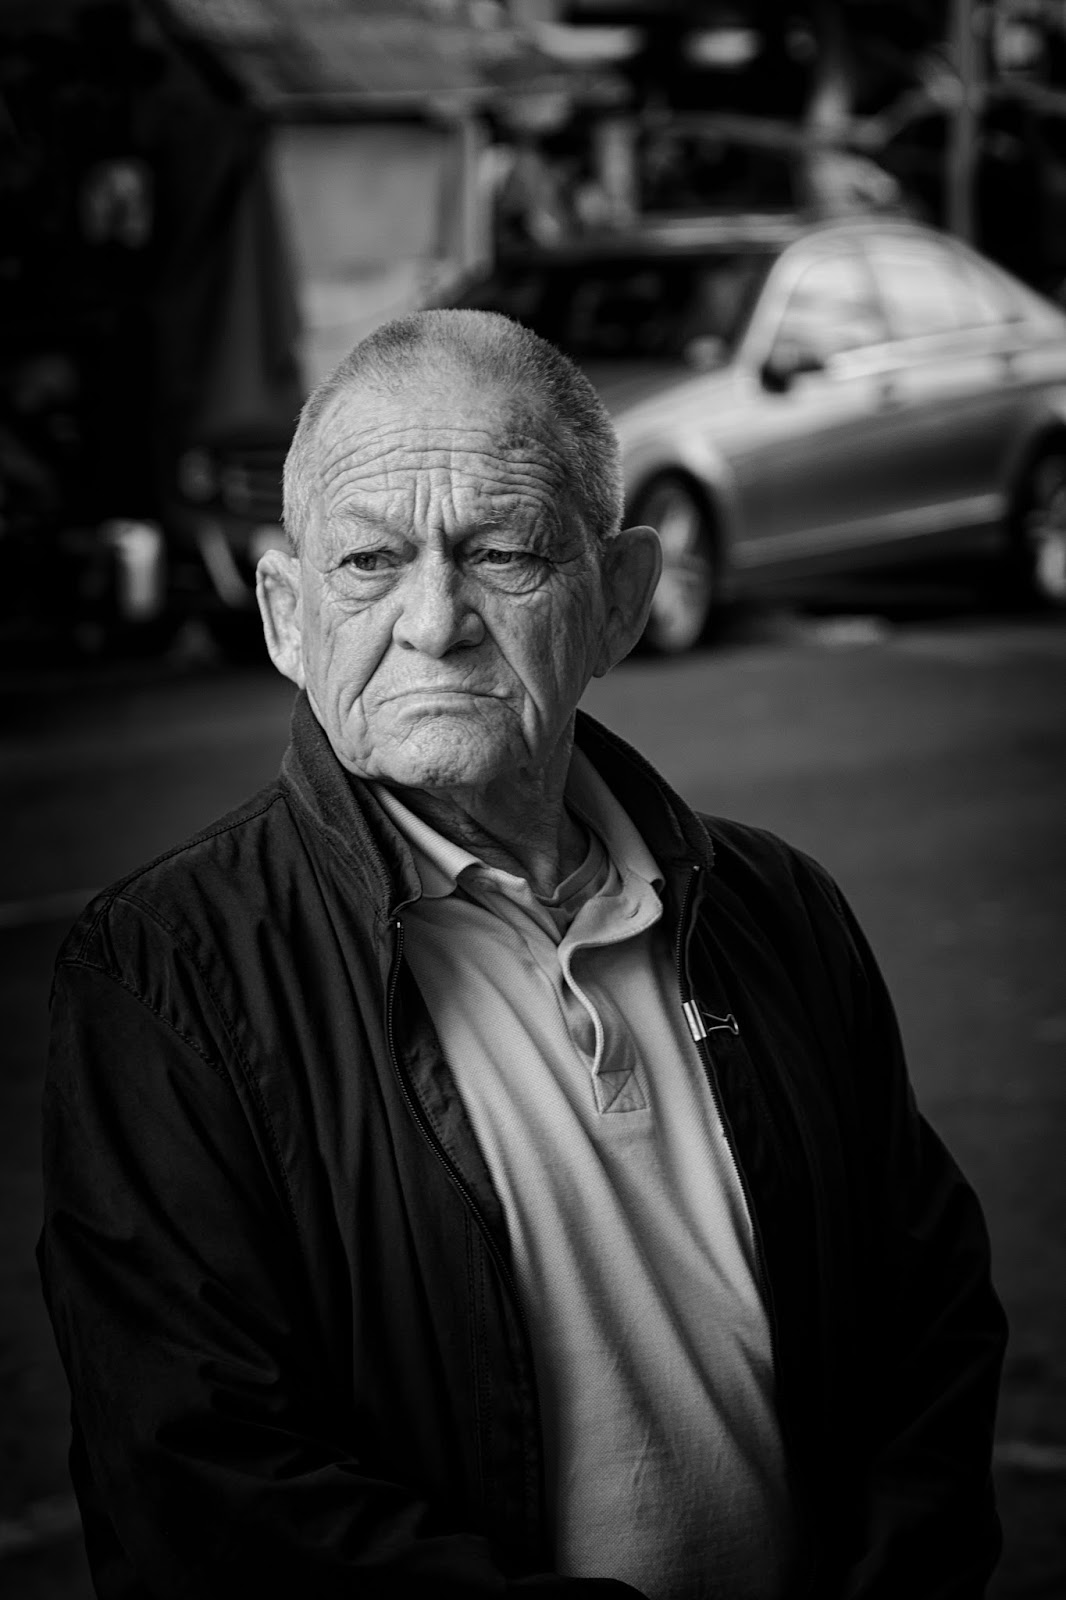 A man in a candid street portrait